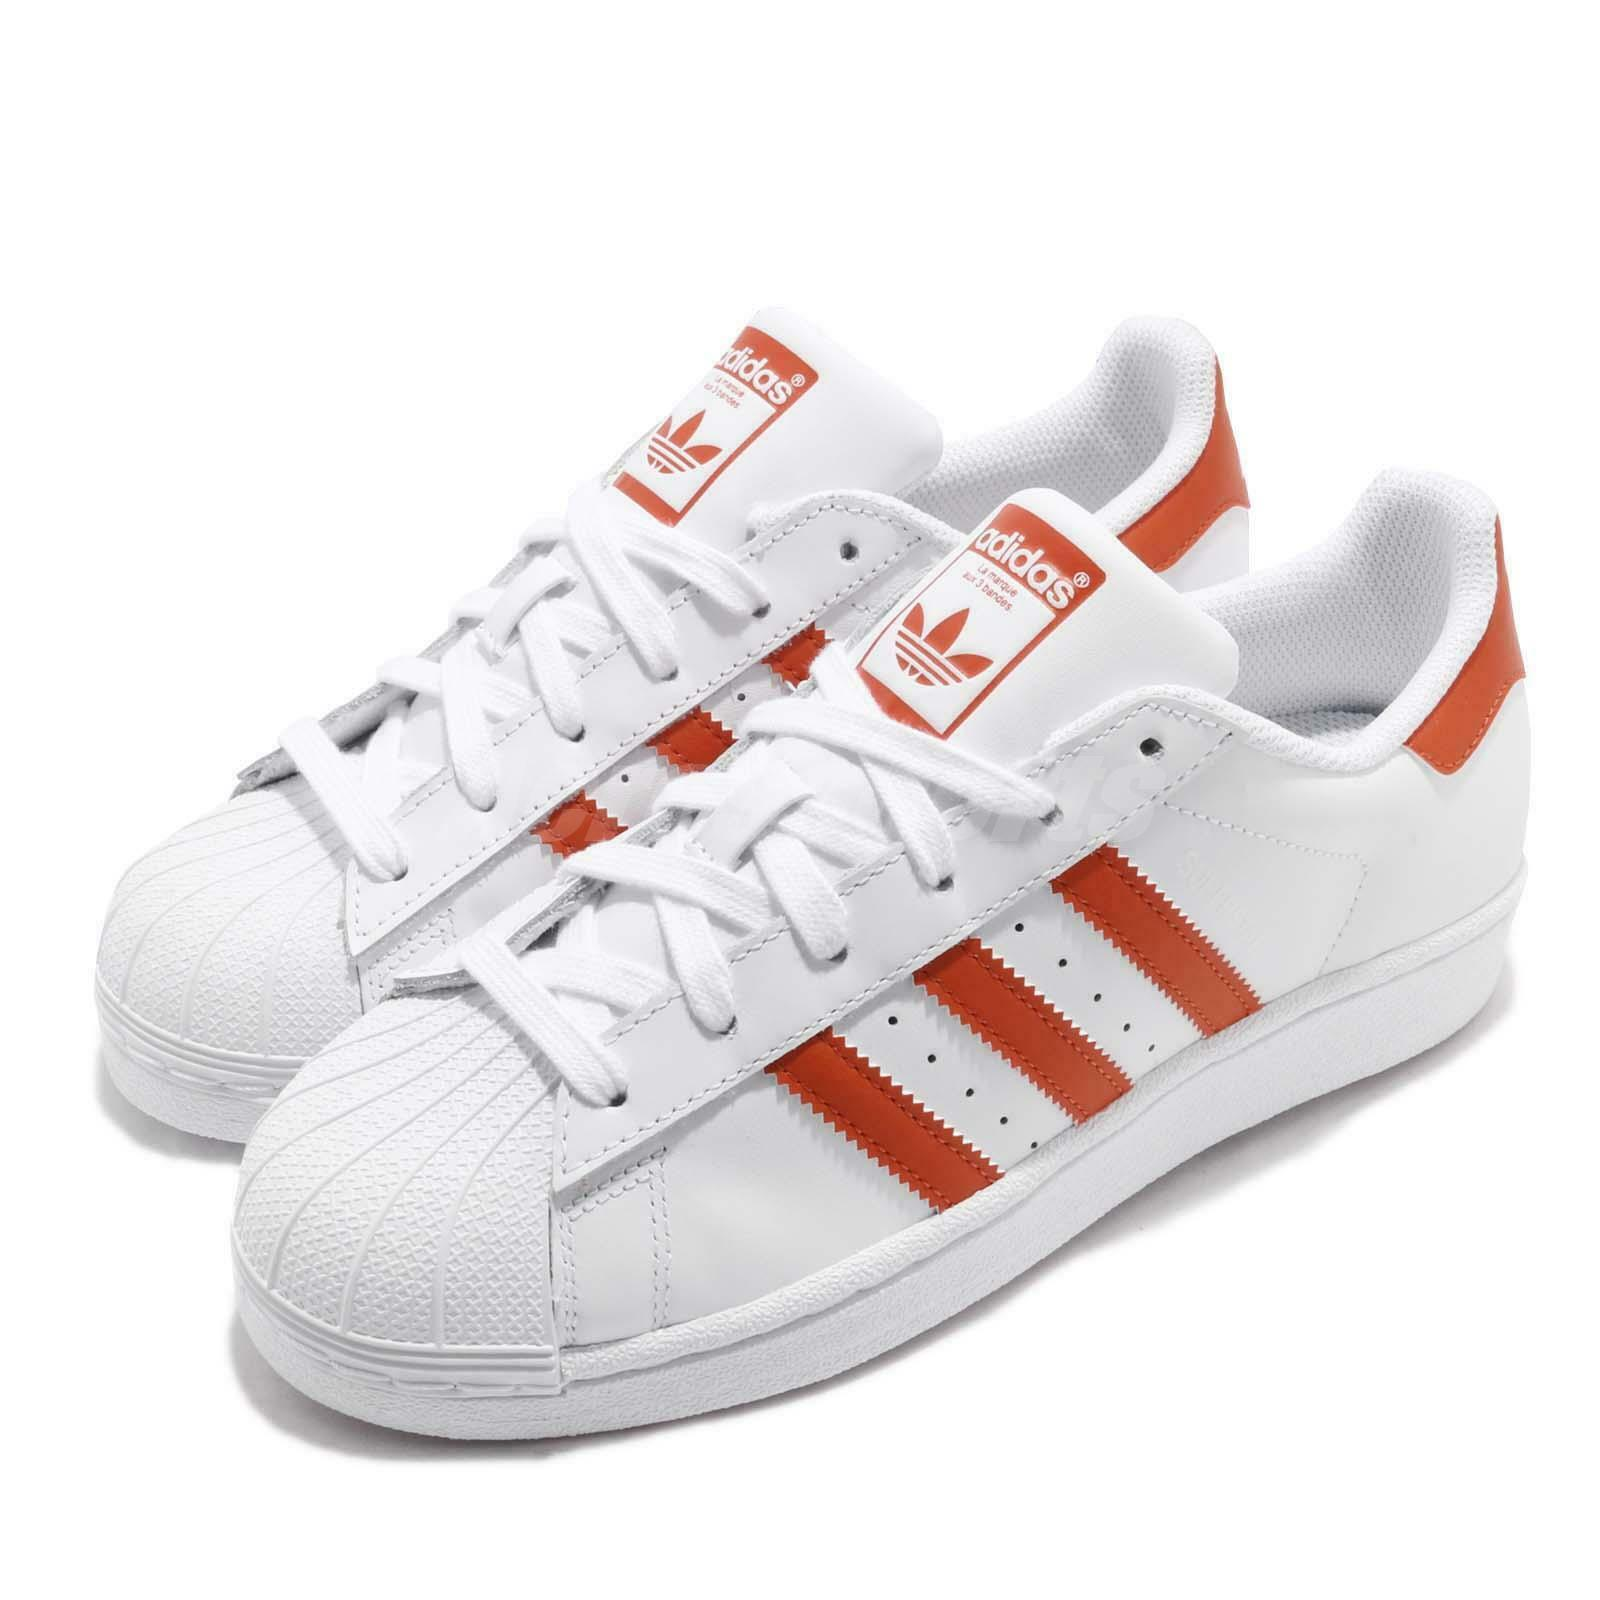 Adidas Originals Superstar White orange Men Classic Casual shoes Sneakers G27807